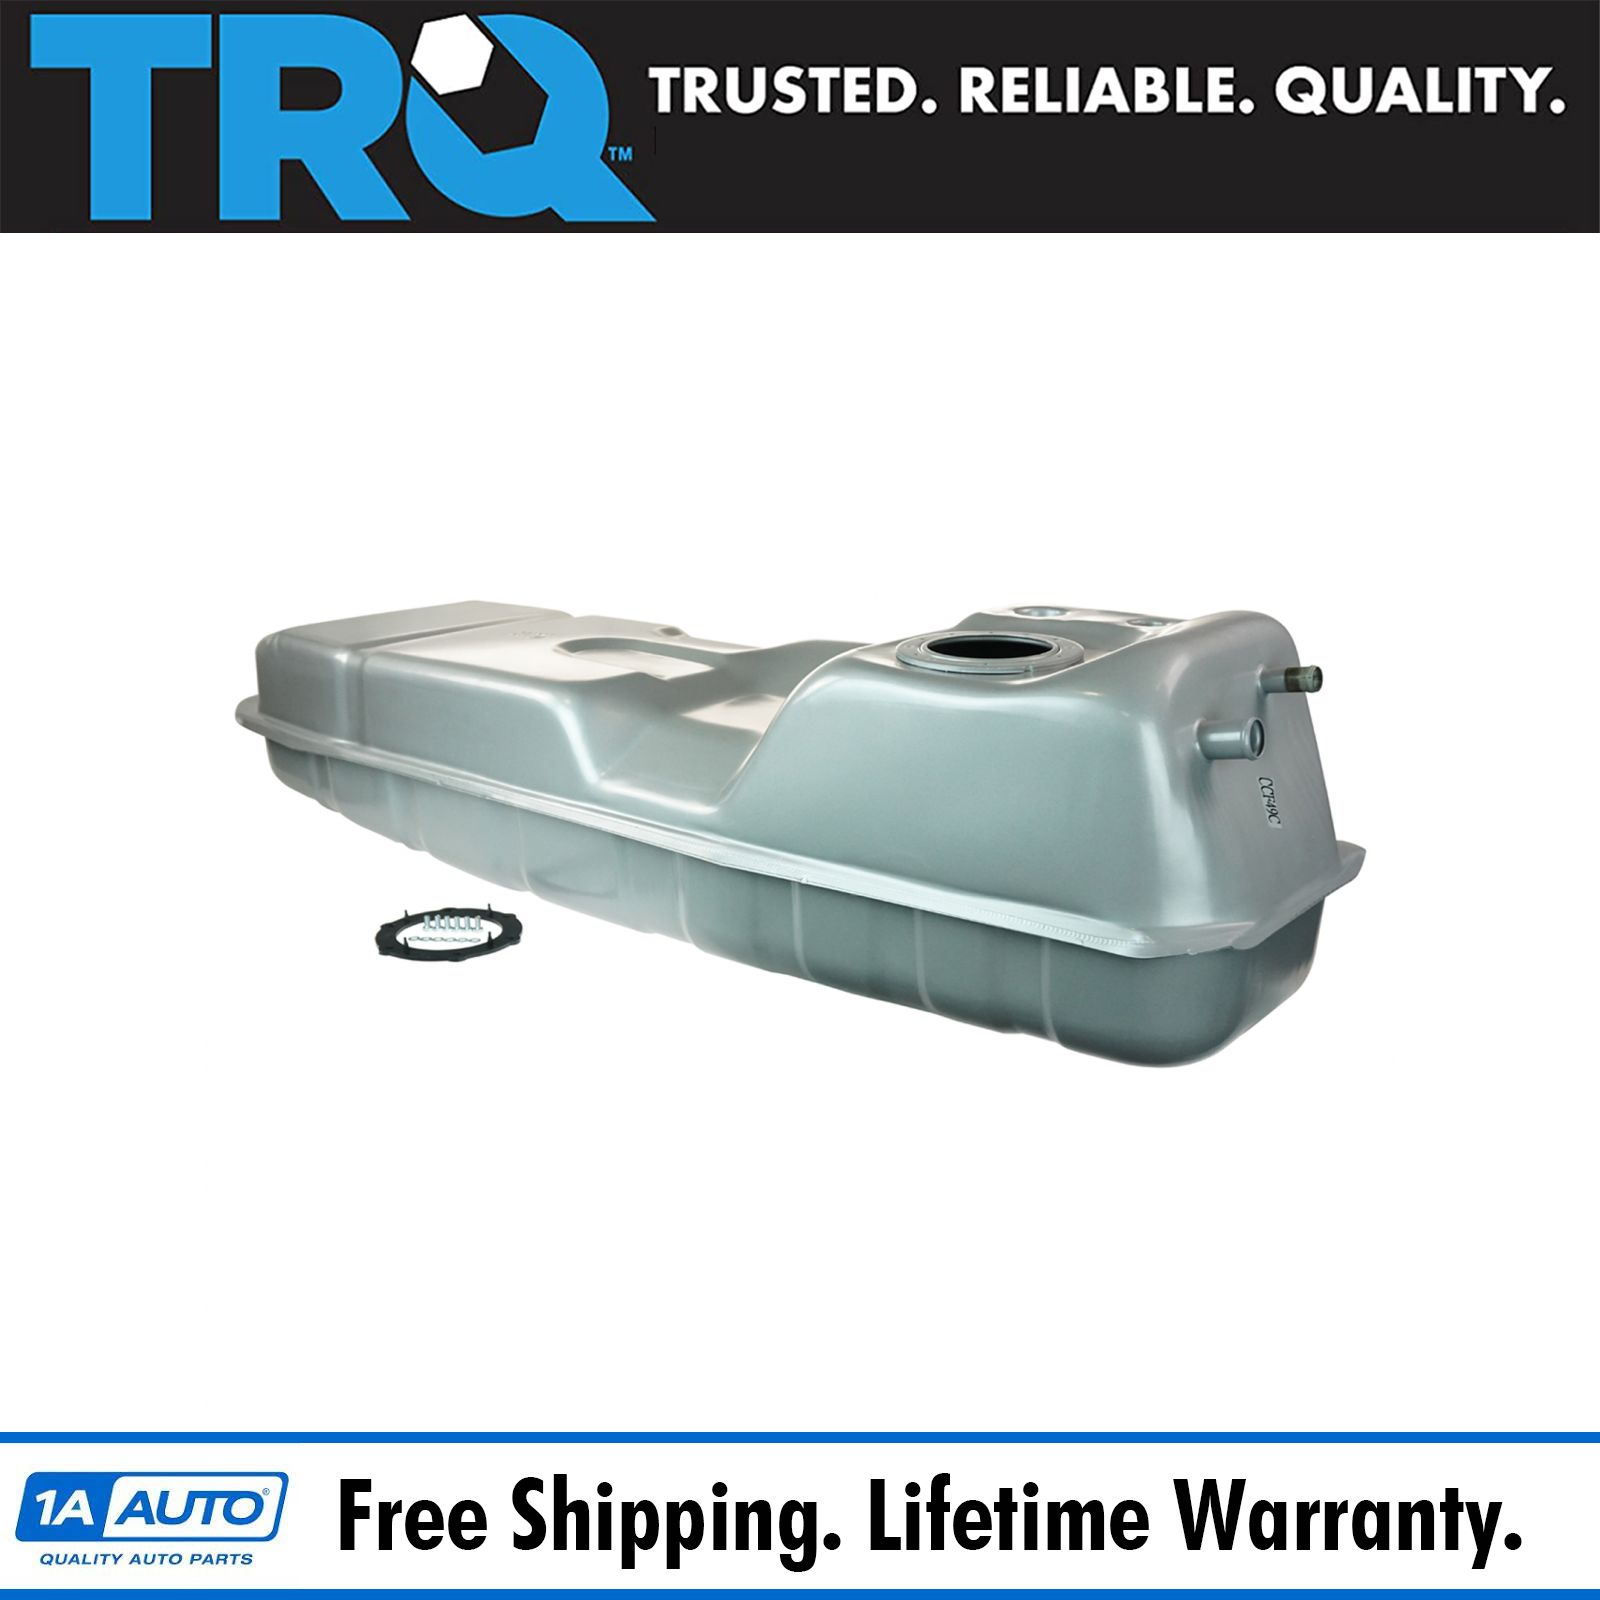 Steel 21 Gallon Fuel Tank for 1995 Ford Explorer